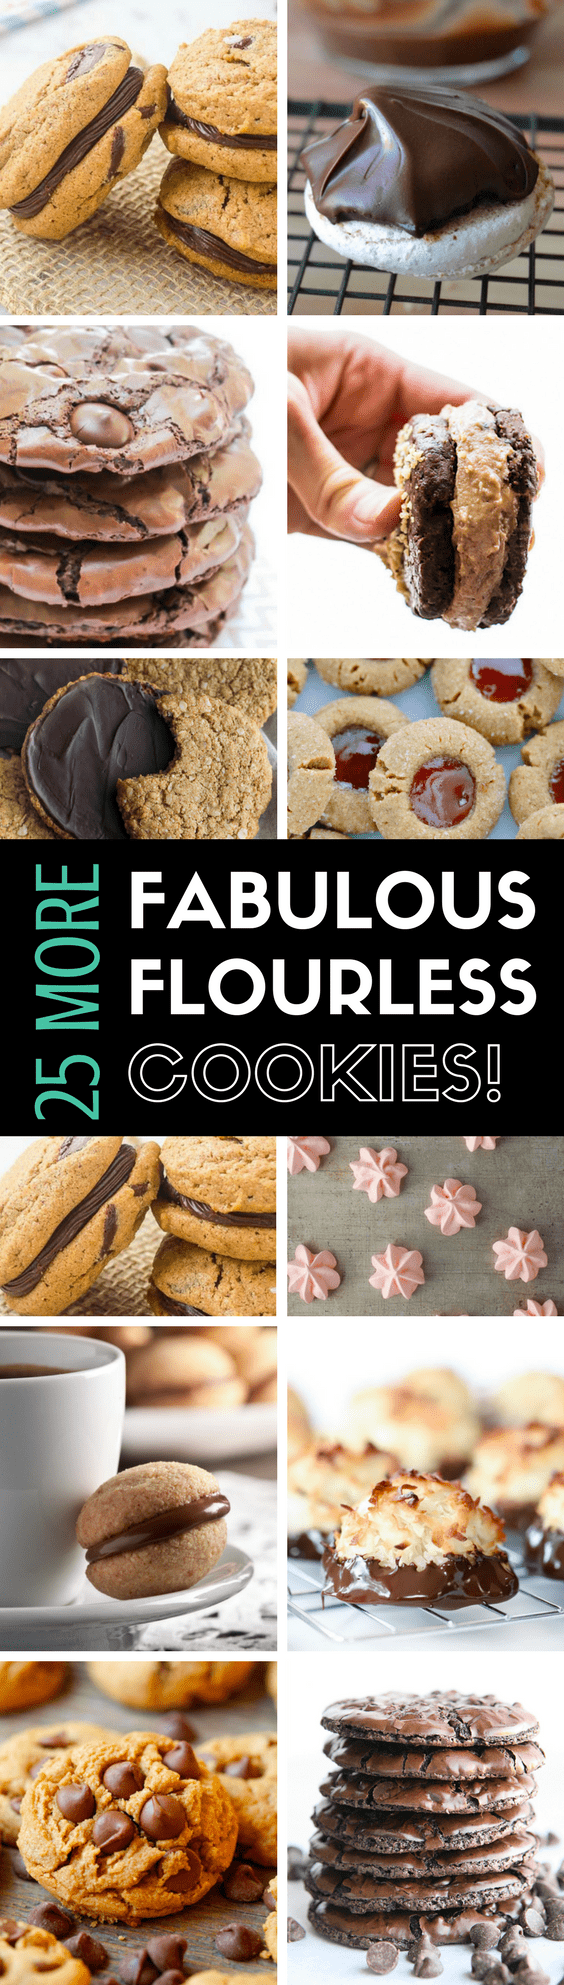 25 MORE Fabulous Flourless Cookies ~ a round-up of the best, most delicious gluten free cookies out there! | dessert | healthier cookies | cookie recipes |